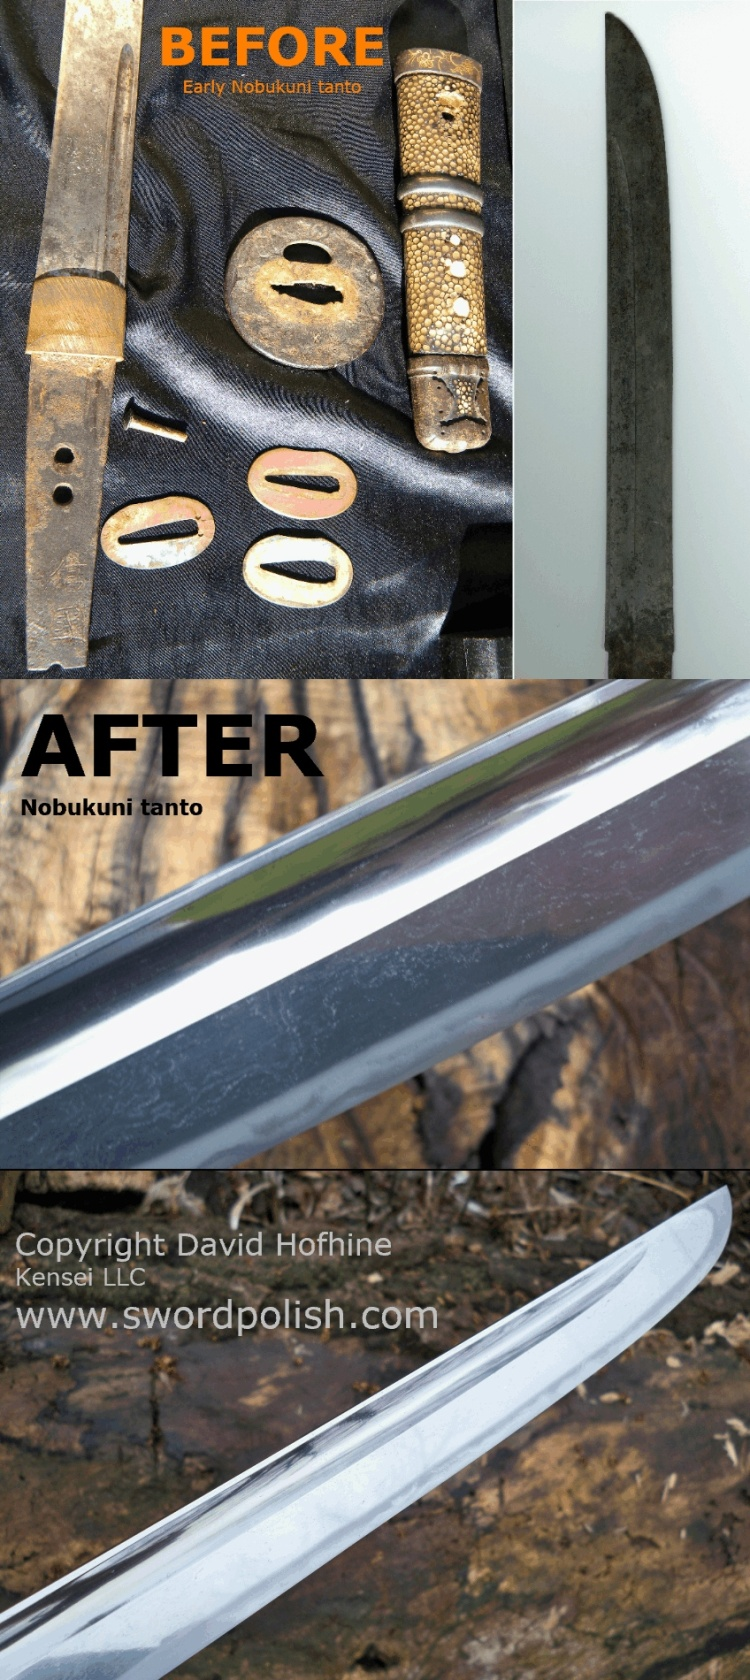 Nobukuni tanto before and after